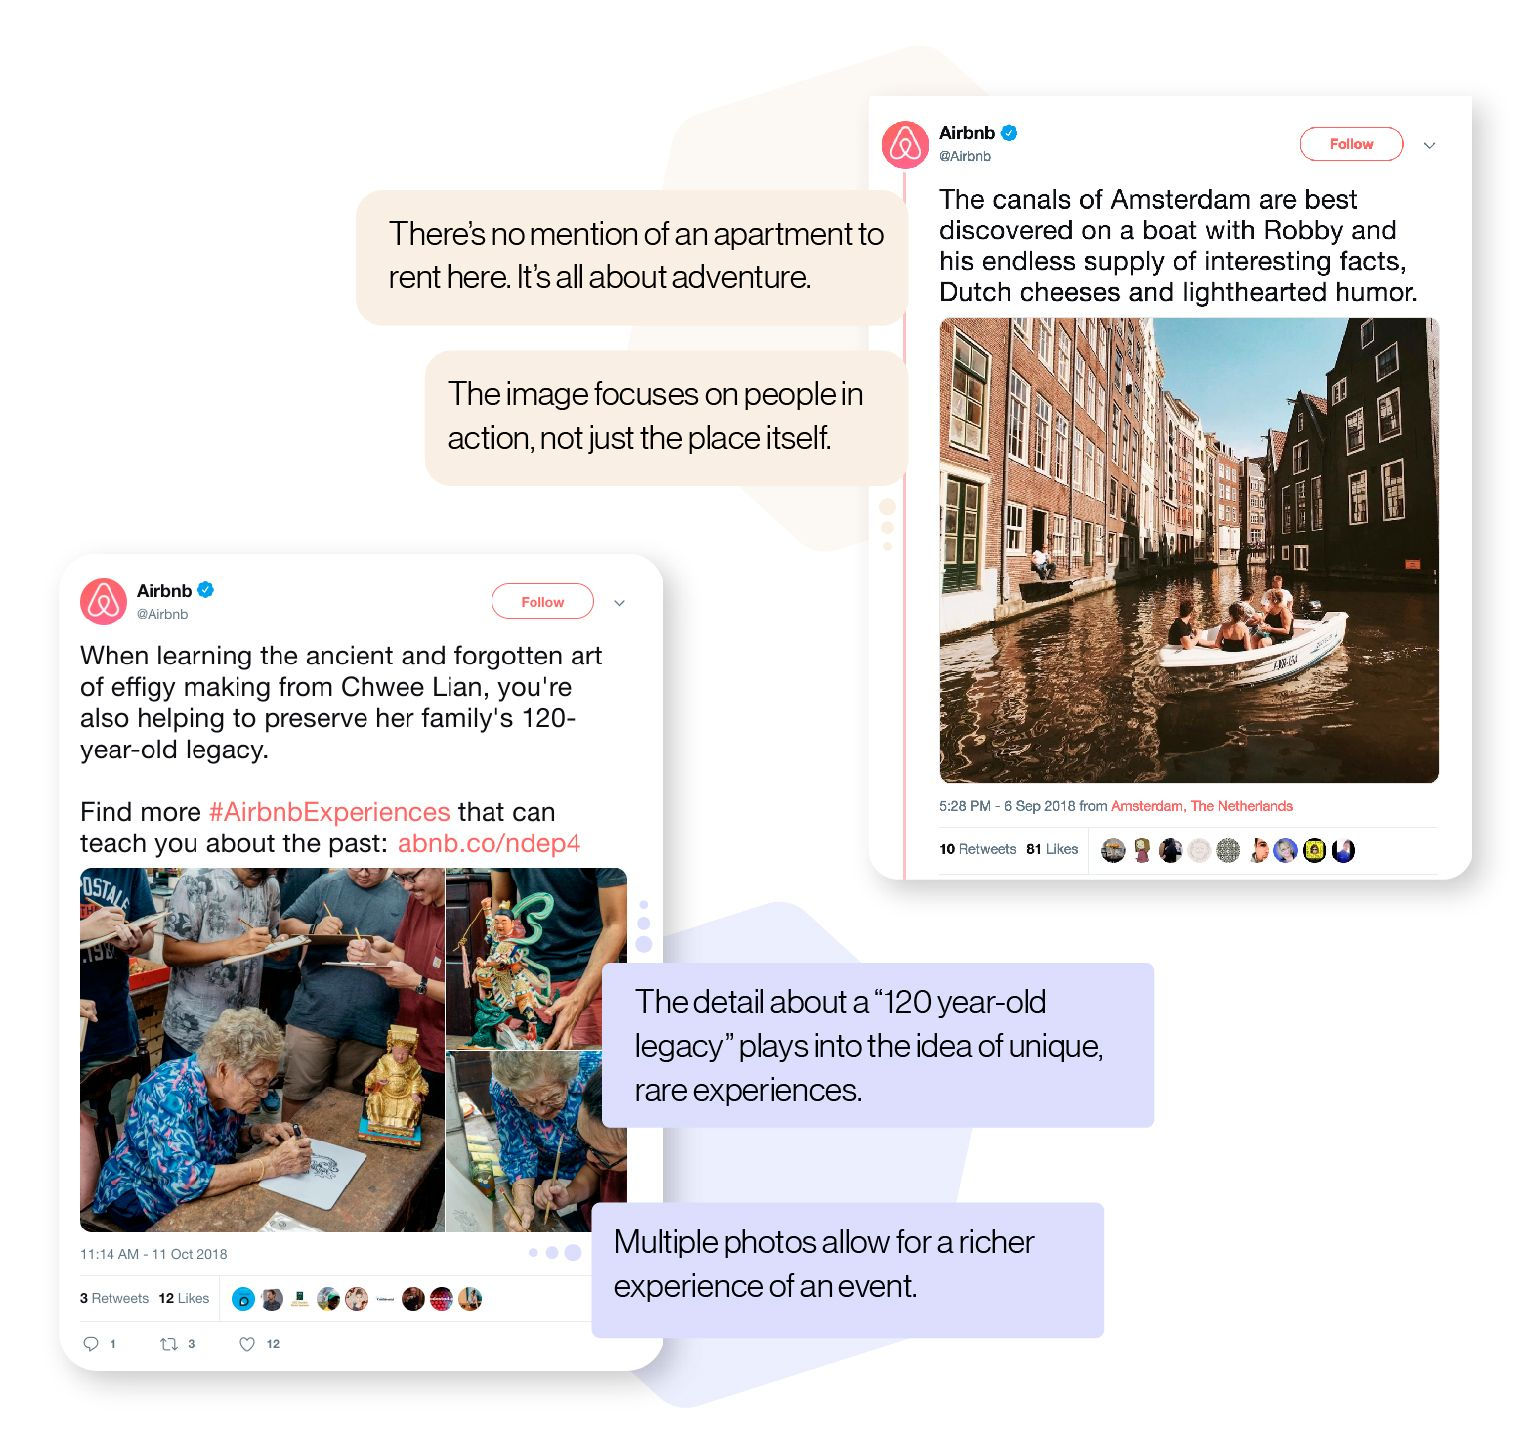 Image: Examples of tweets from Airbnb that highlight how they promote experiences and adventure, rather than just talk about apartment listings